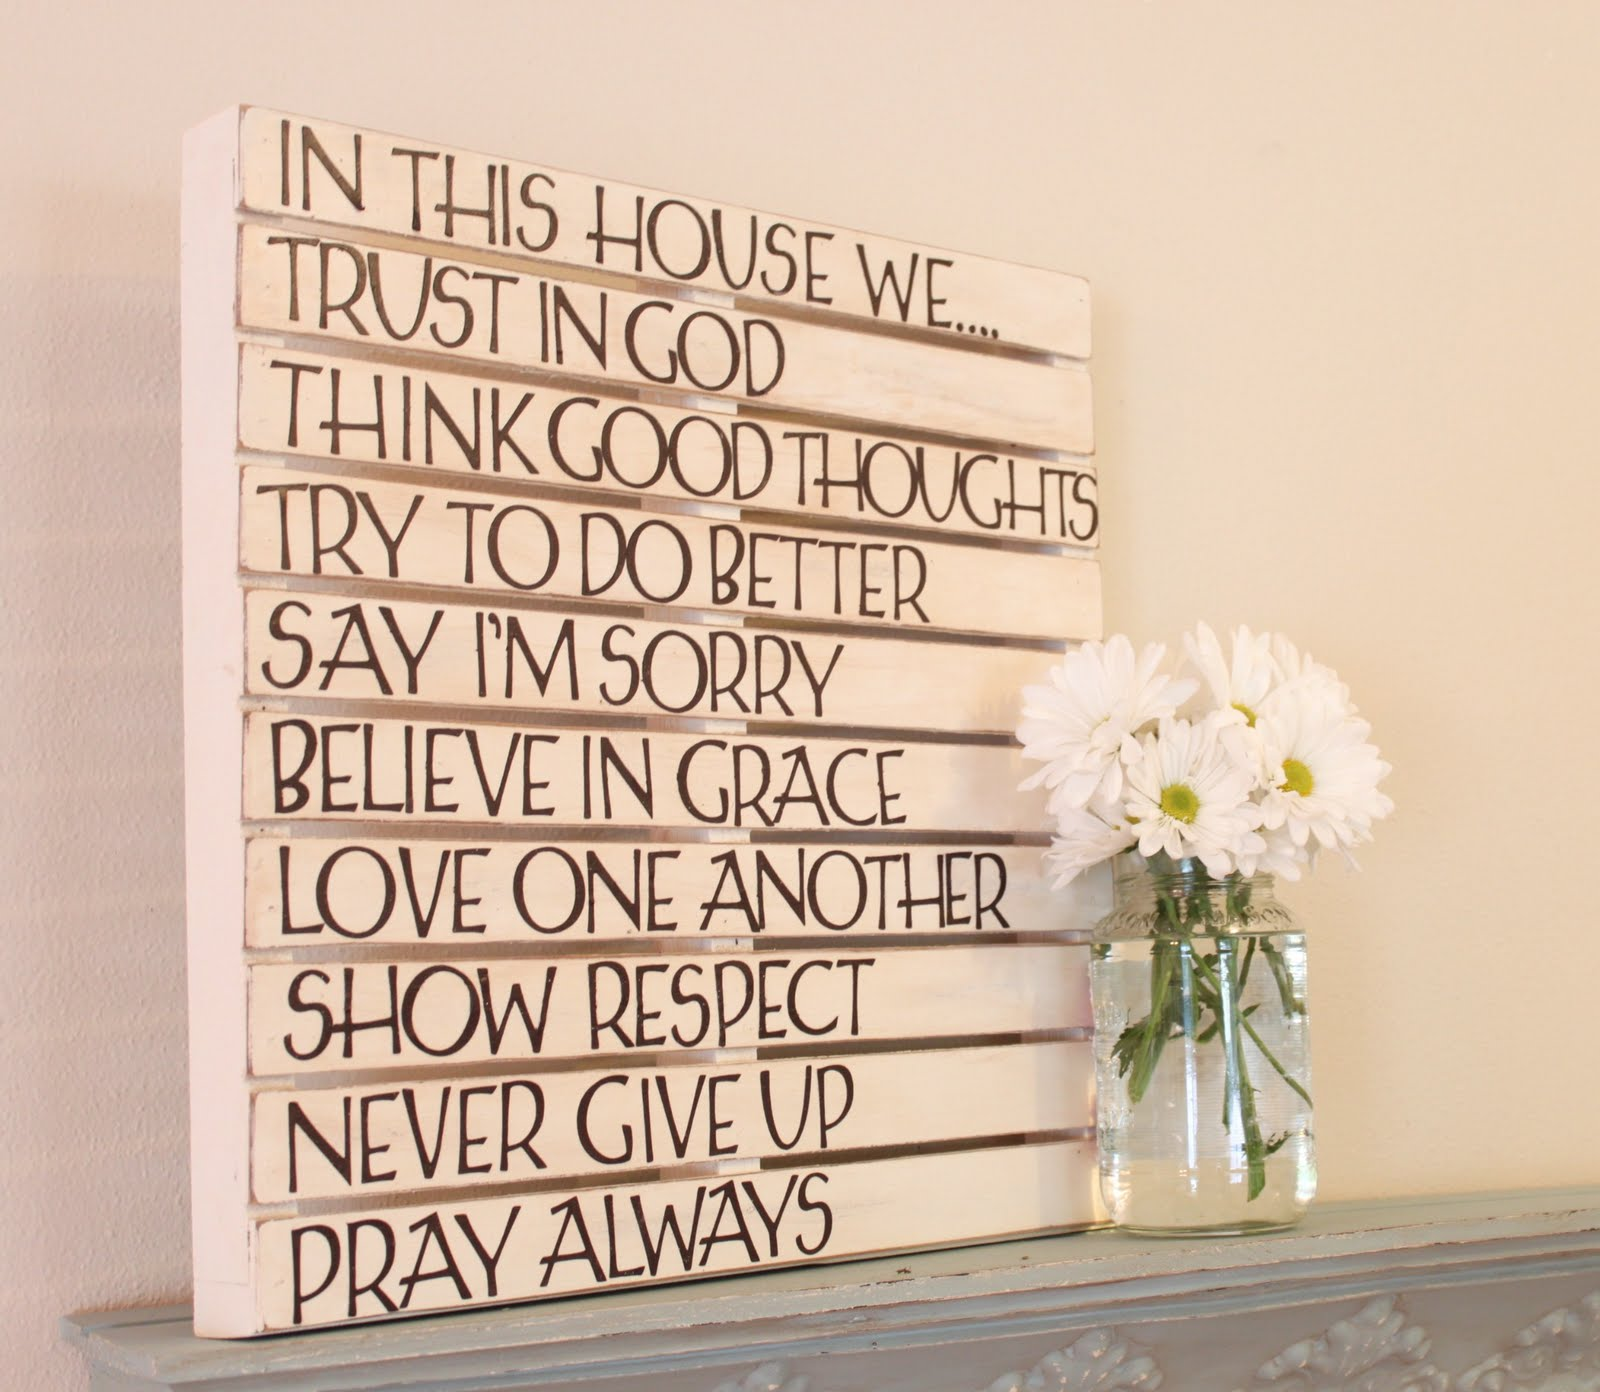 Diy wall art ideas for living room - Easy Do It Yourself Wood Pallet Signs Design More Info